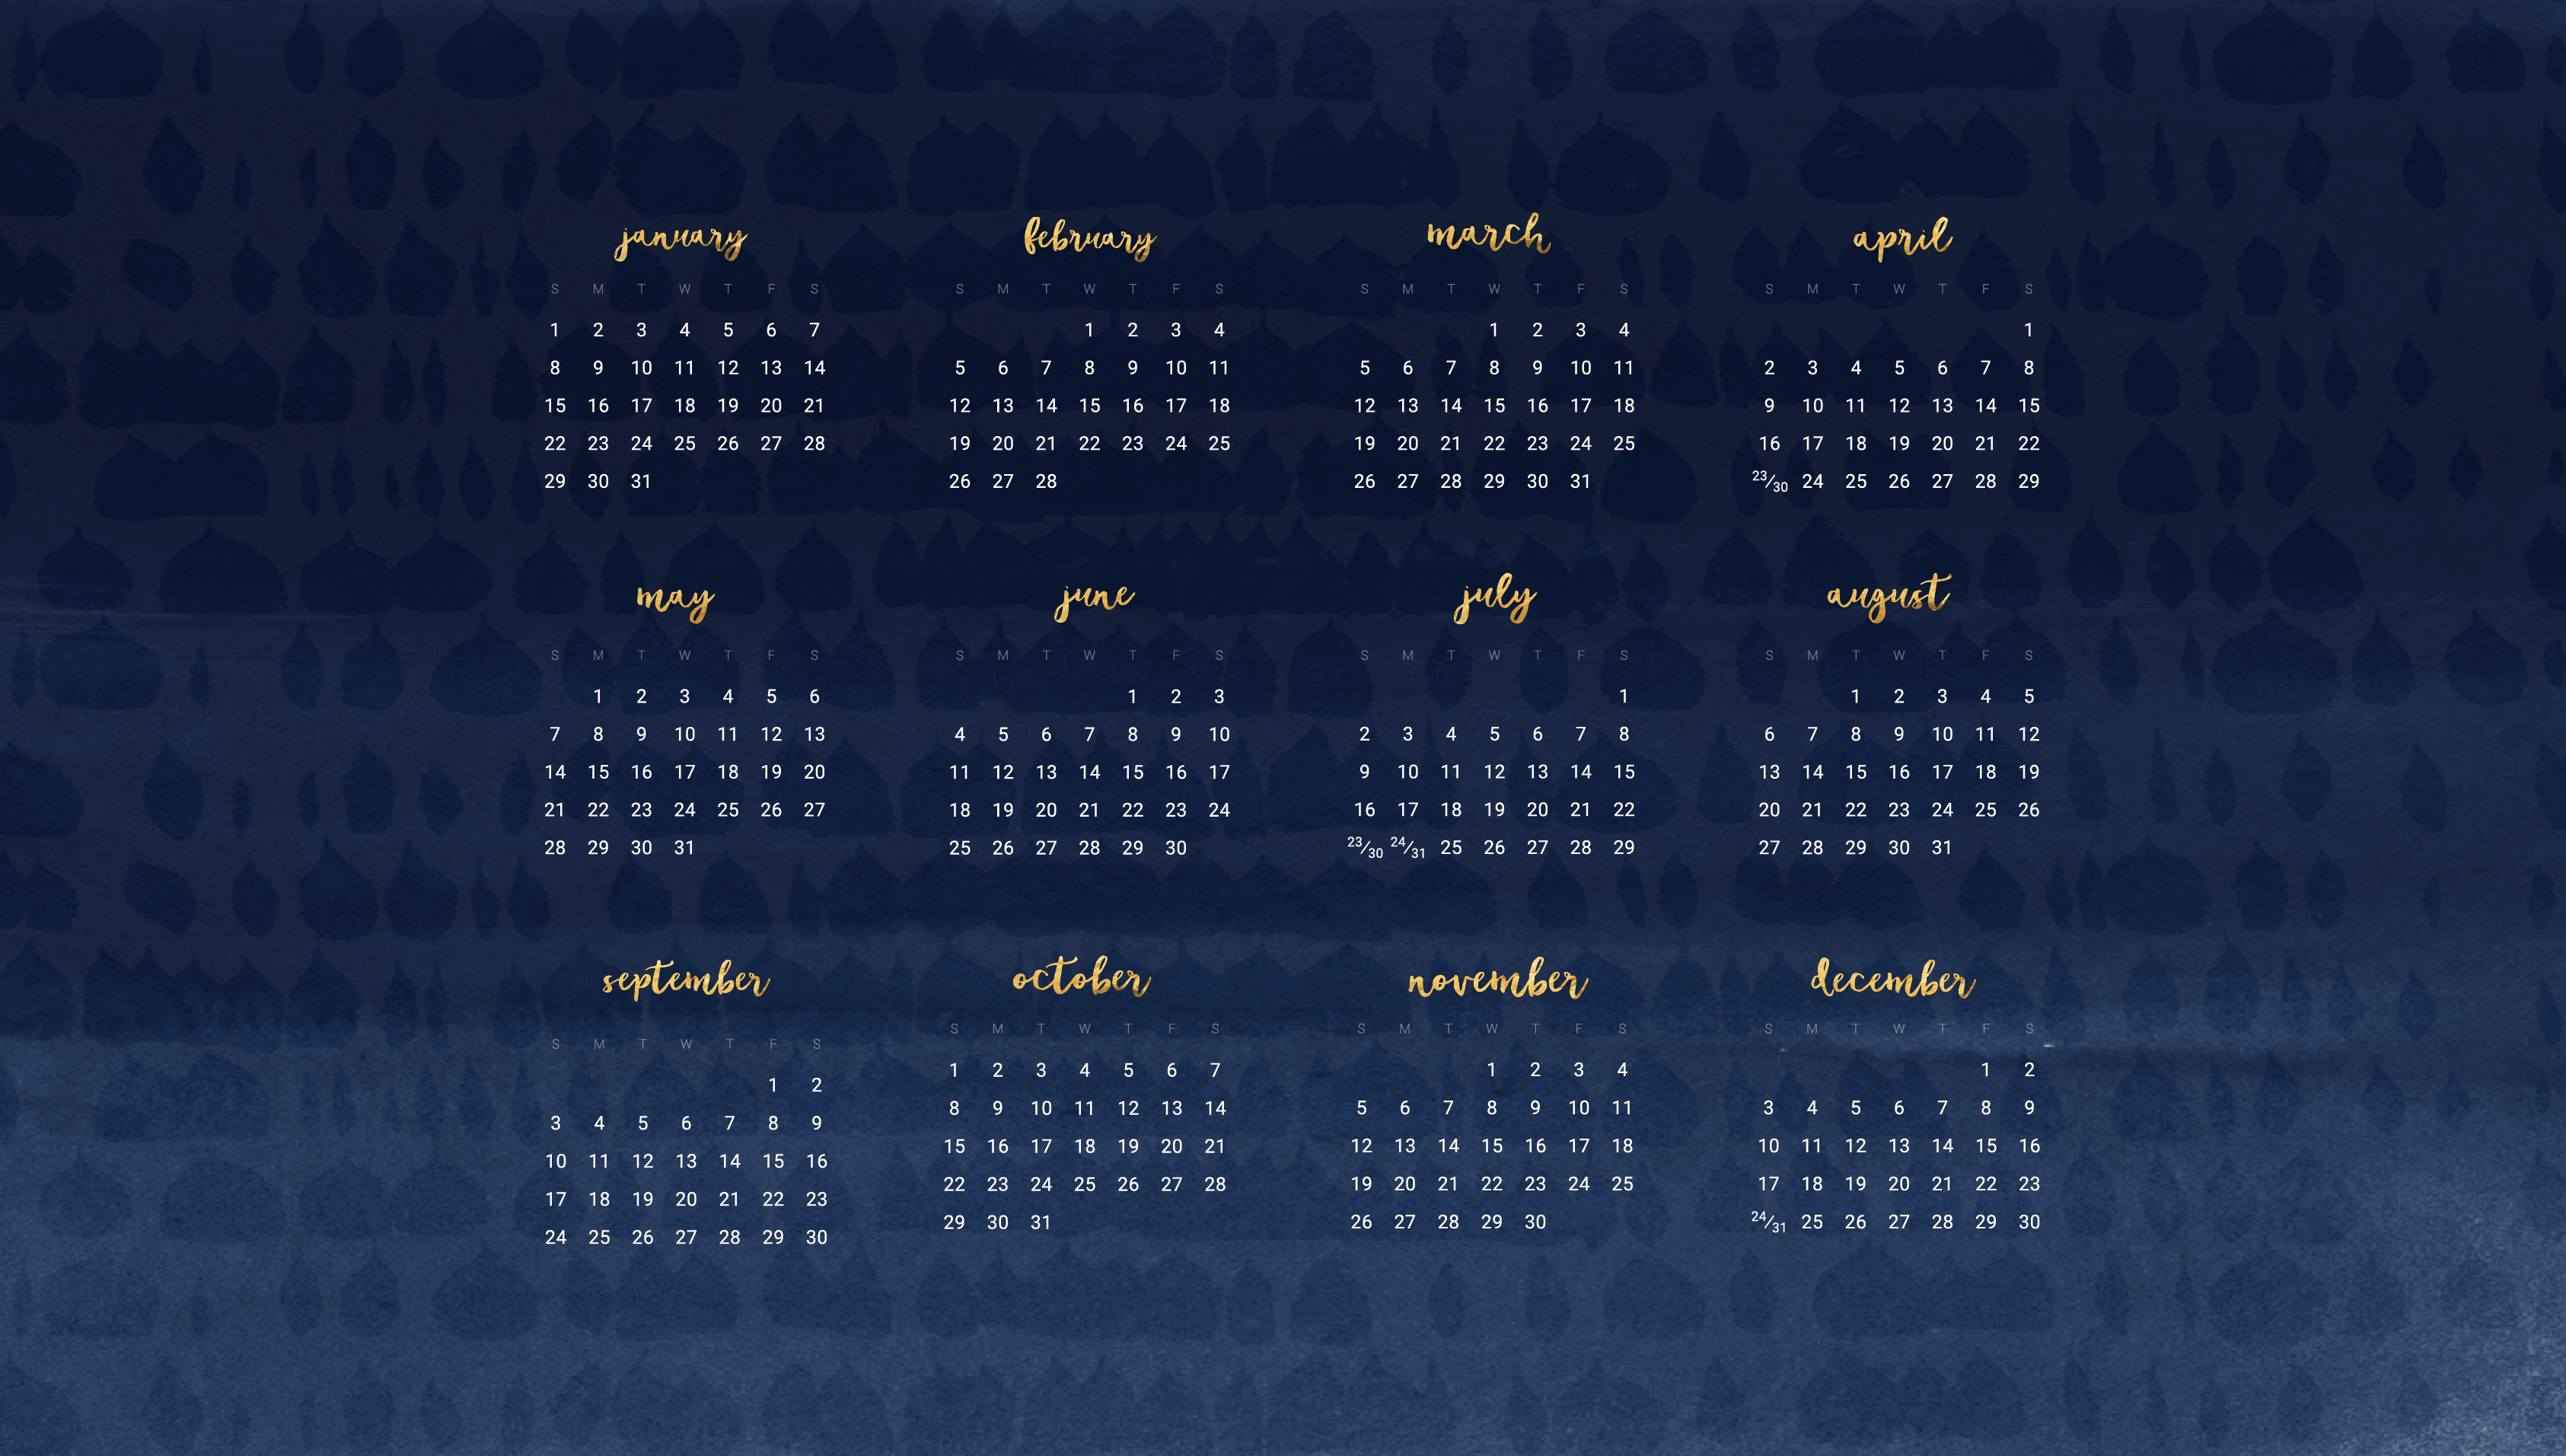 Free Download Wallpaper Calendars For 2018 61 Images